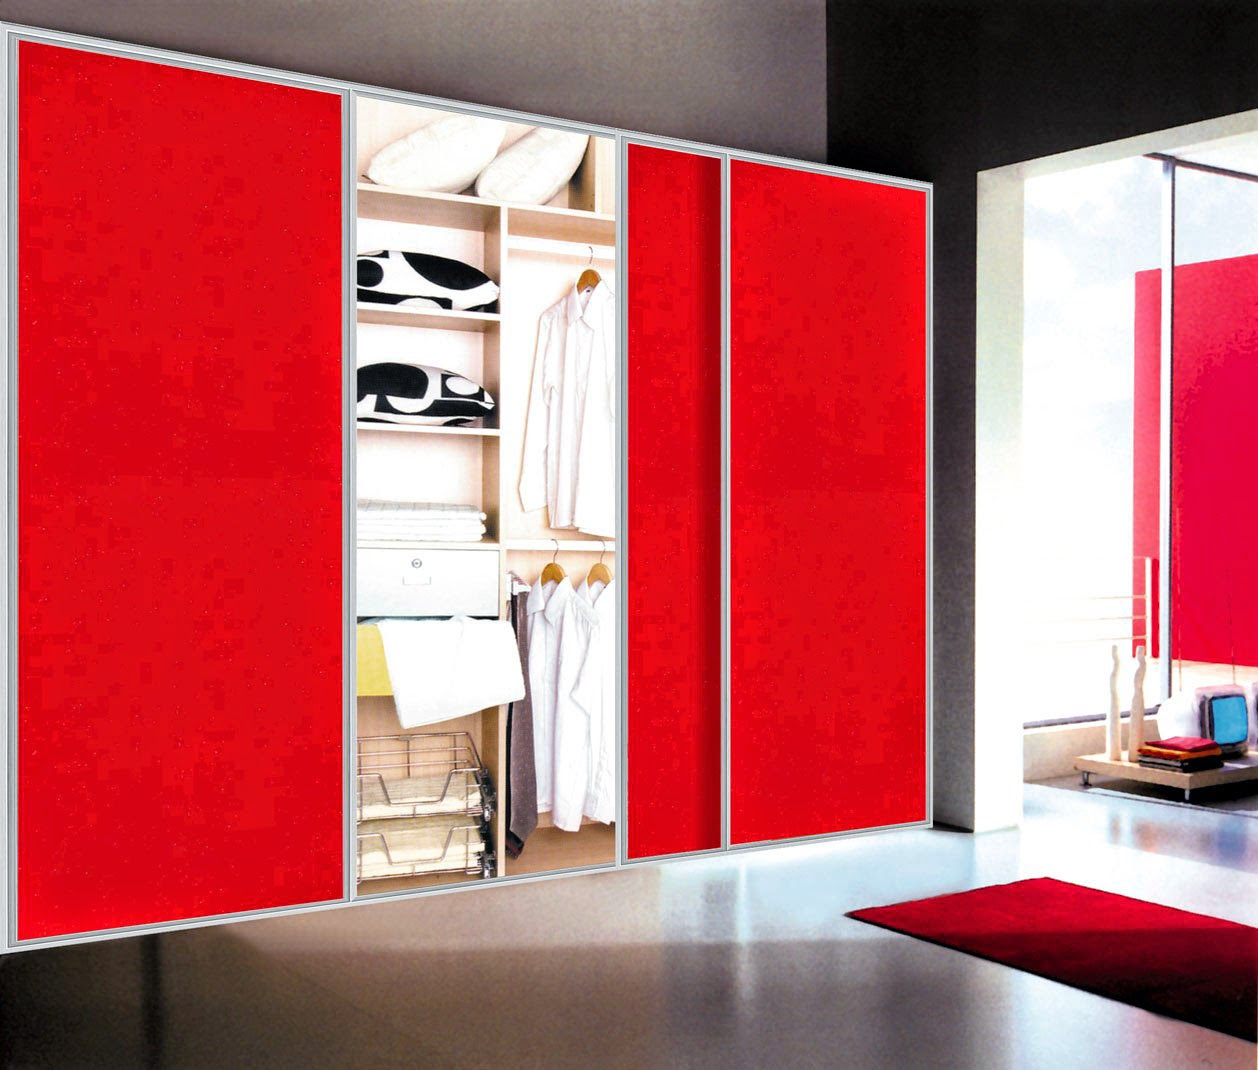 Wardrobe-Clothes-Minimalism-Color-Cerak-In-Door-Gesar